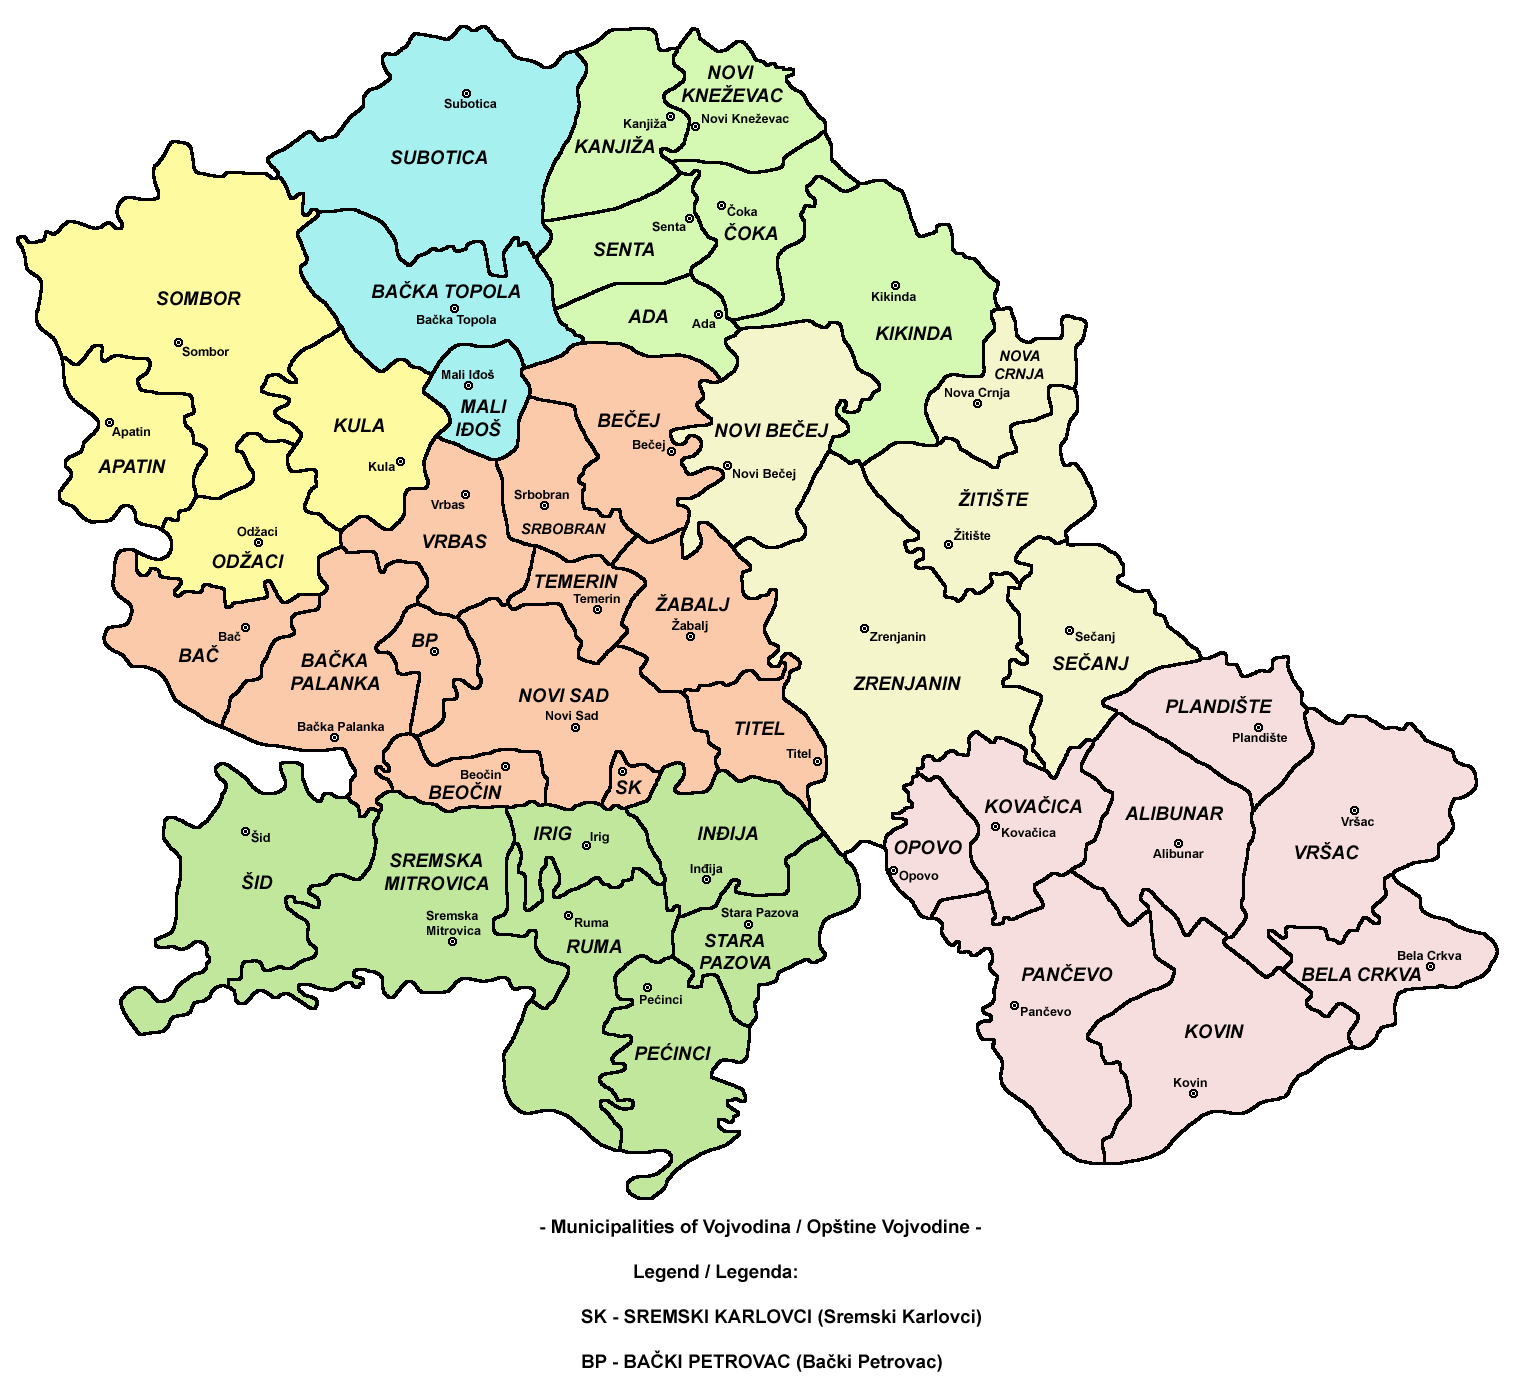 http://upload.wikimedia.org/wikipedia/commons/9/96/Vojvodina_municipalities_map.png